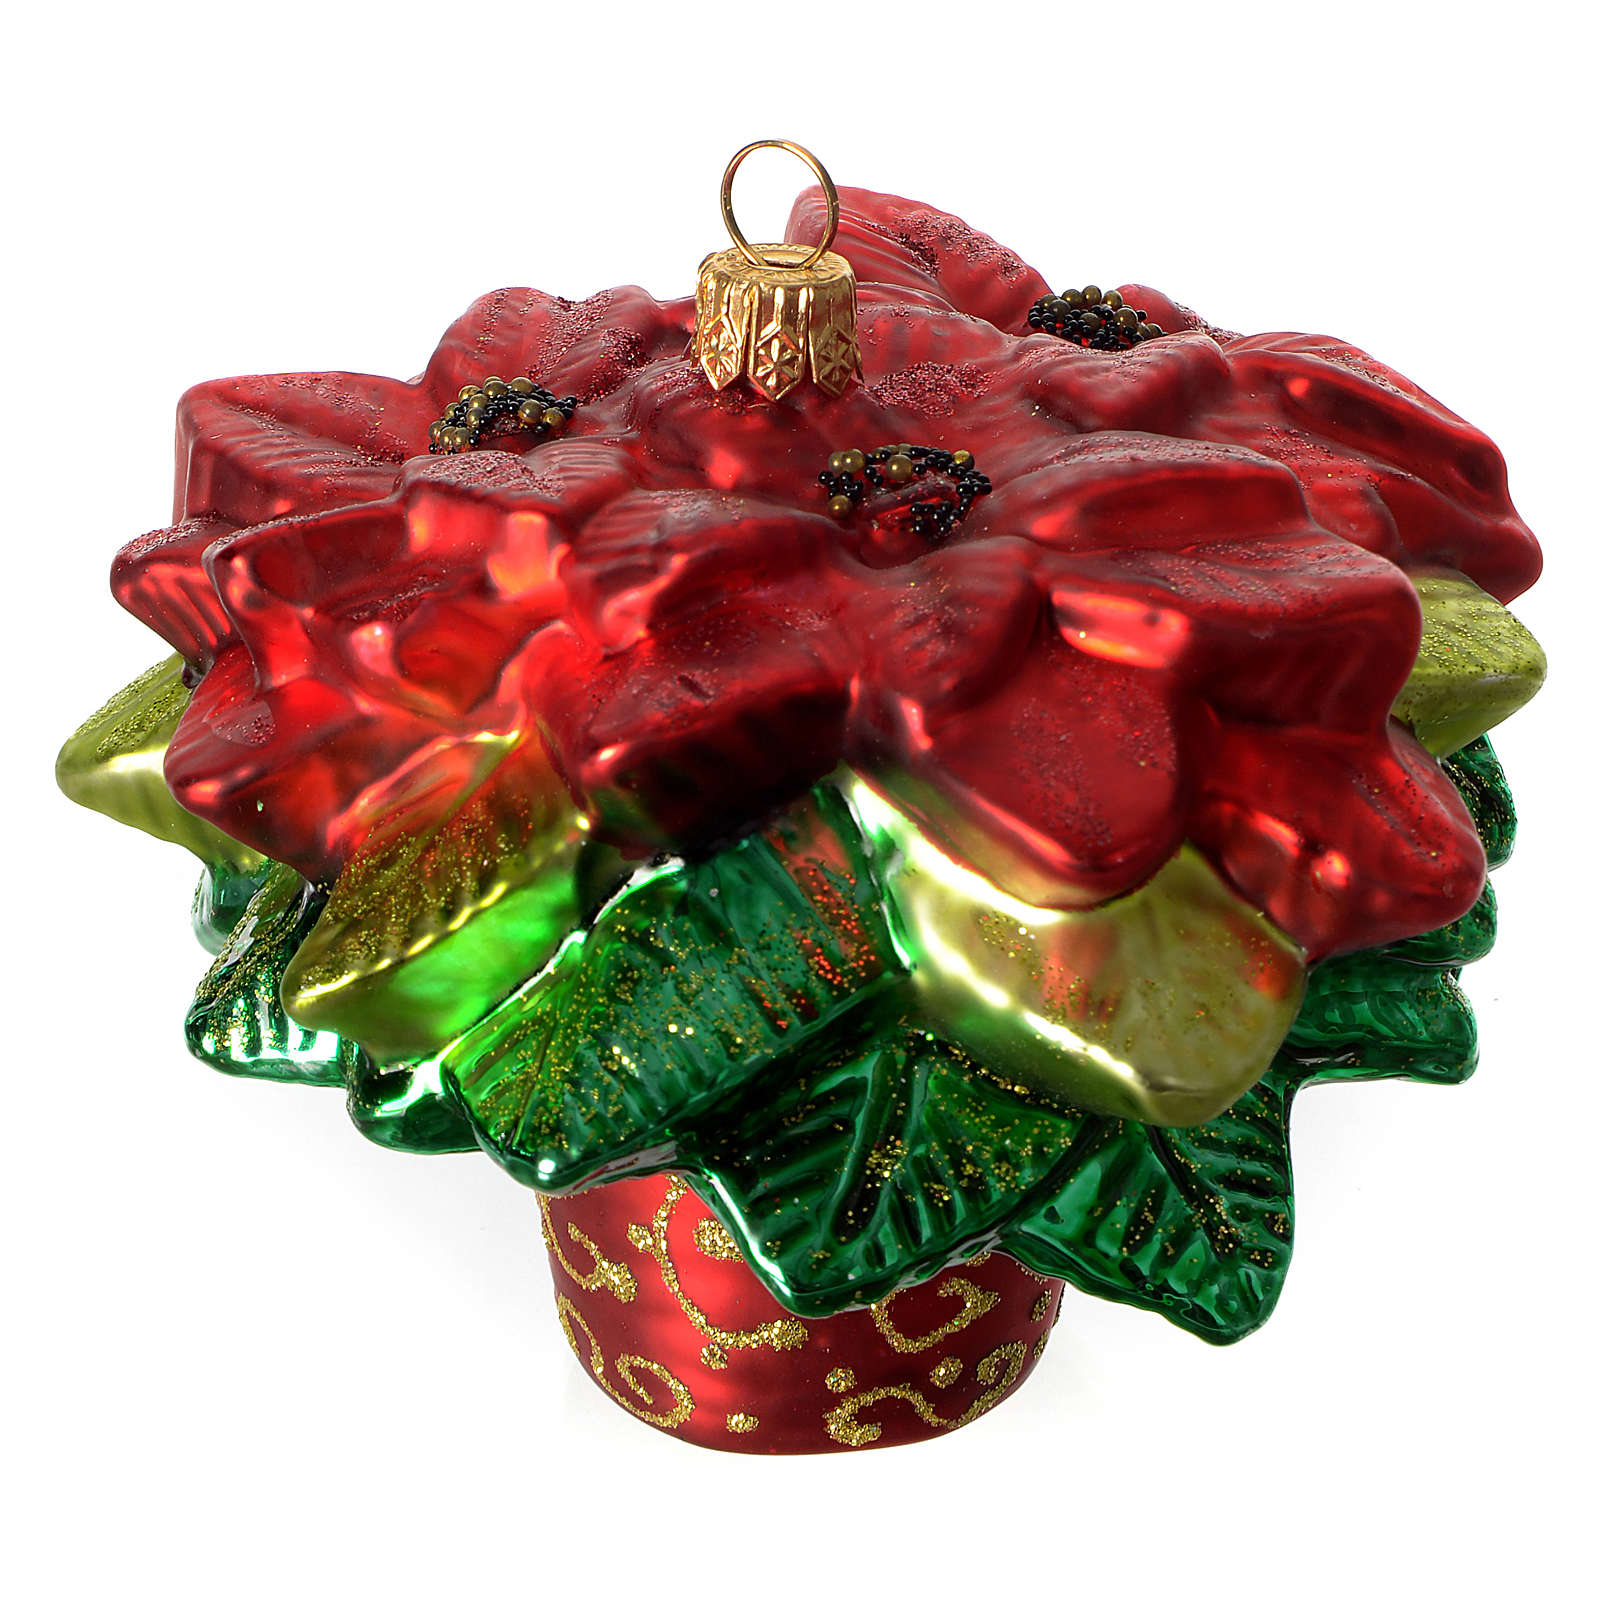 poinsettia christmas tree decoration blown glass 4 - Poinsettia Christmas Tree Decorations